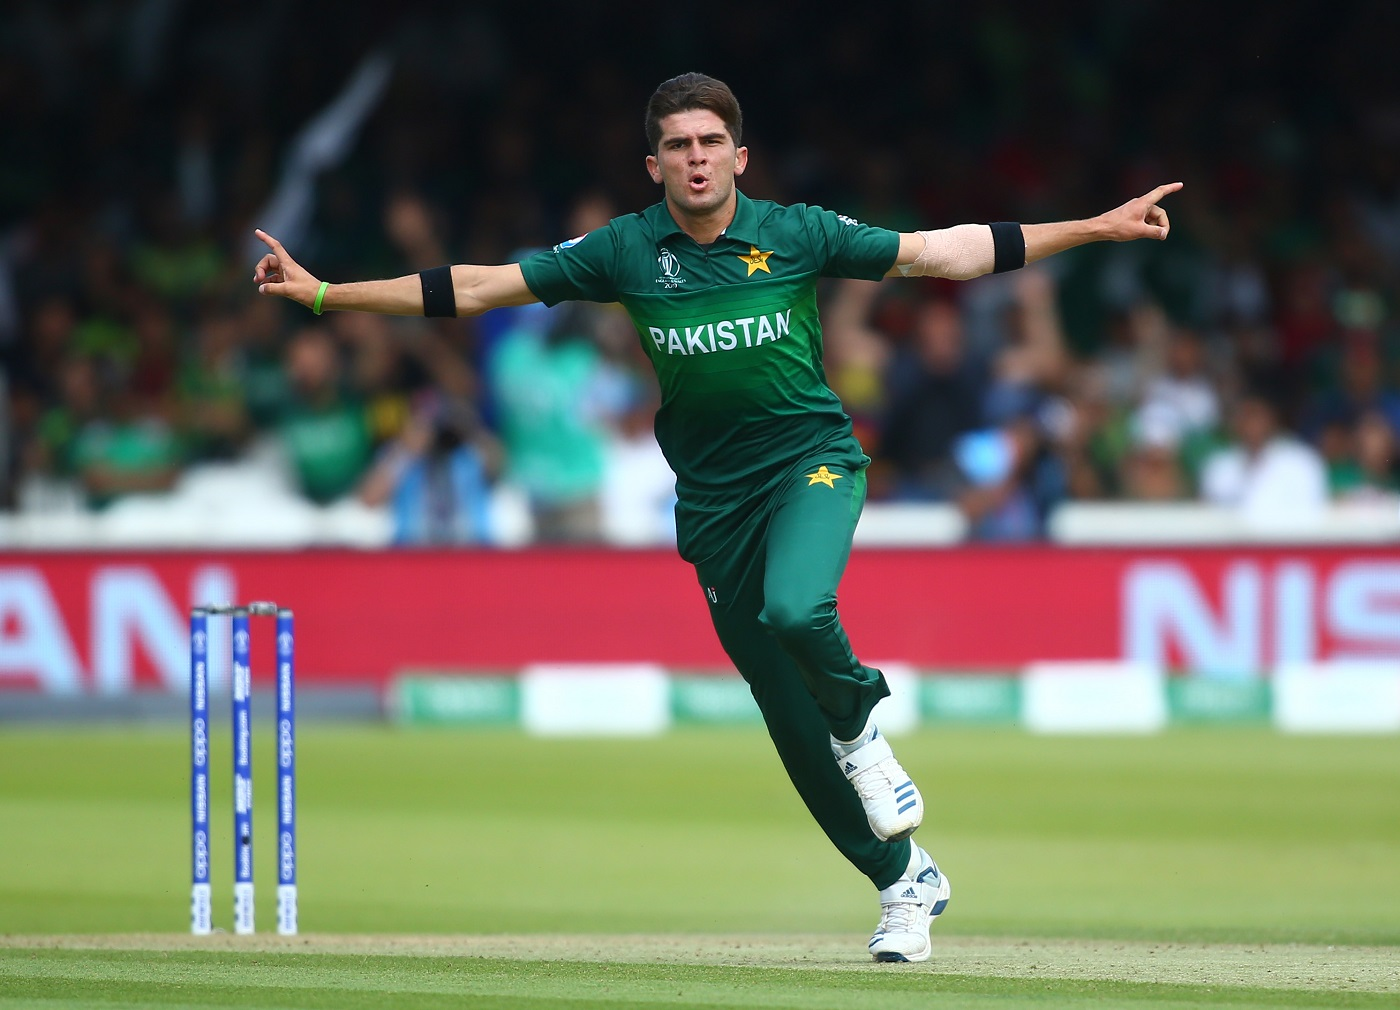 Shaheen Afridi was physically weak - Which Pakistan player said this?